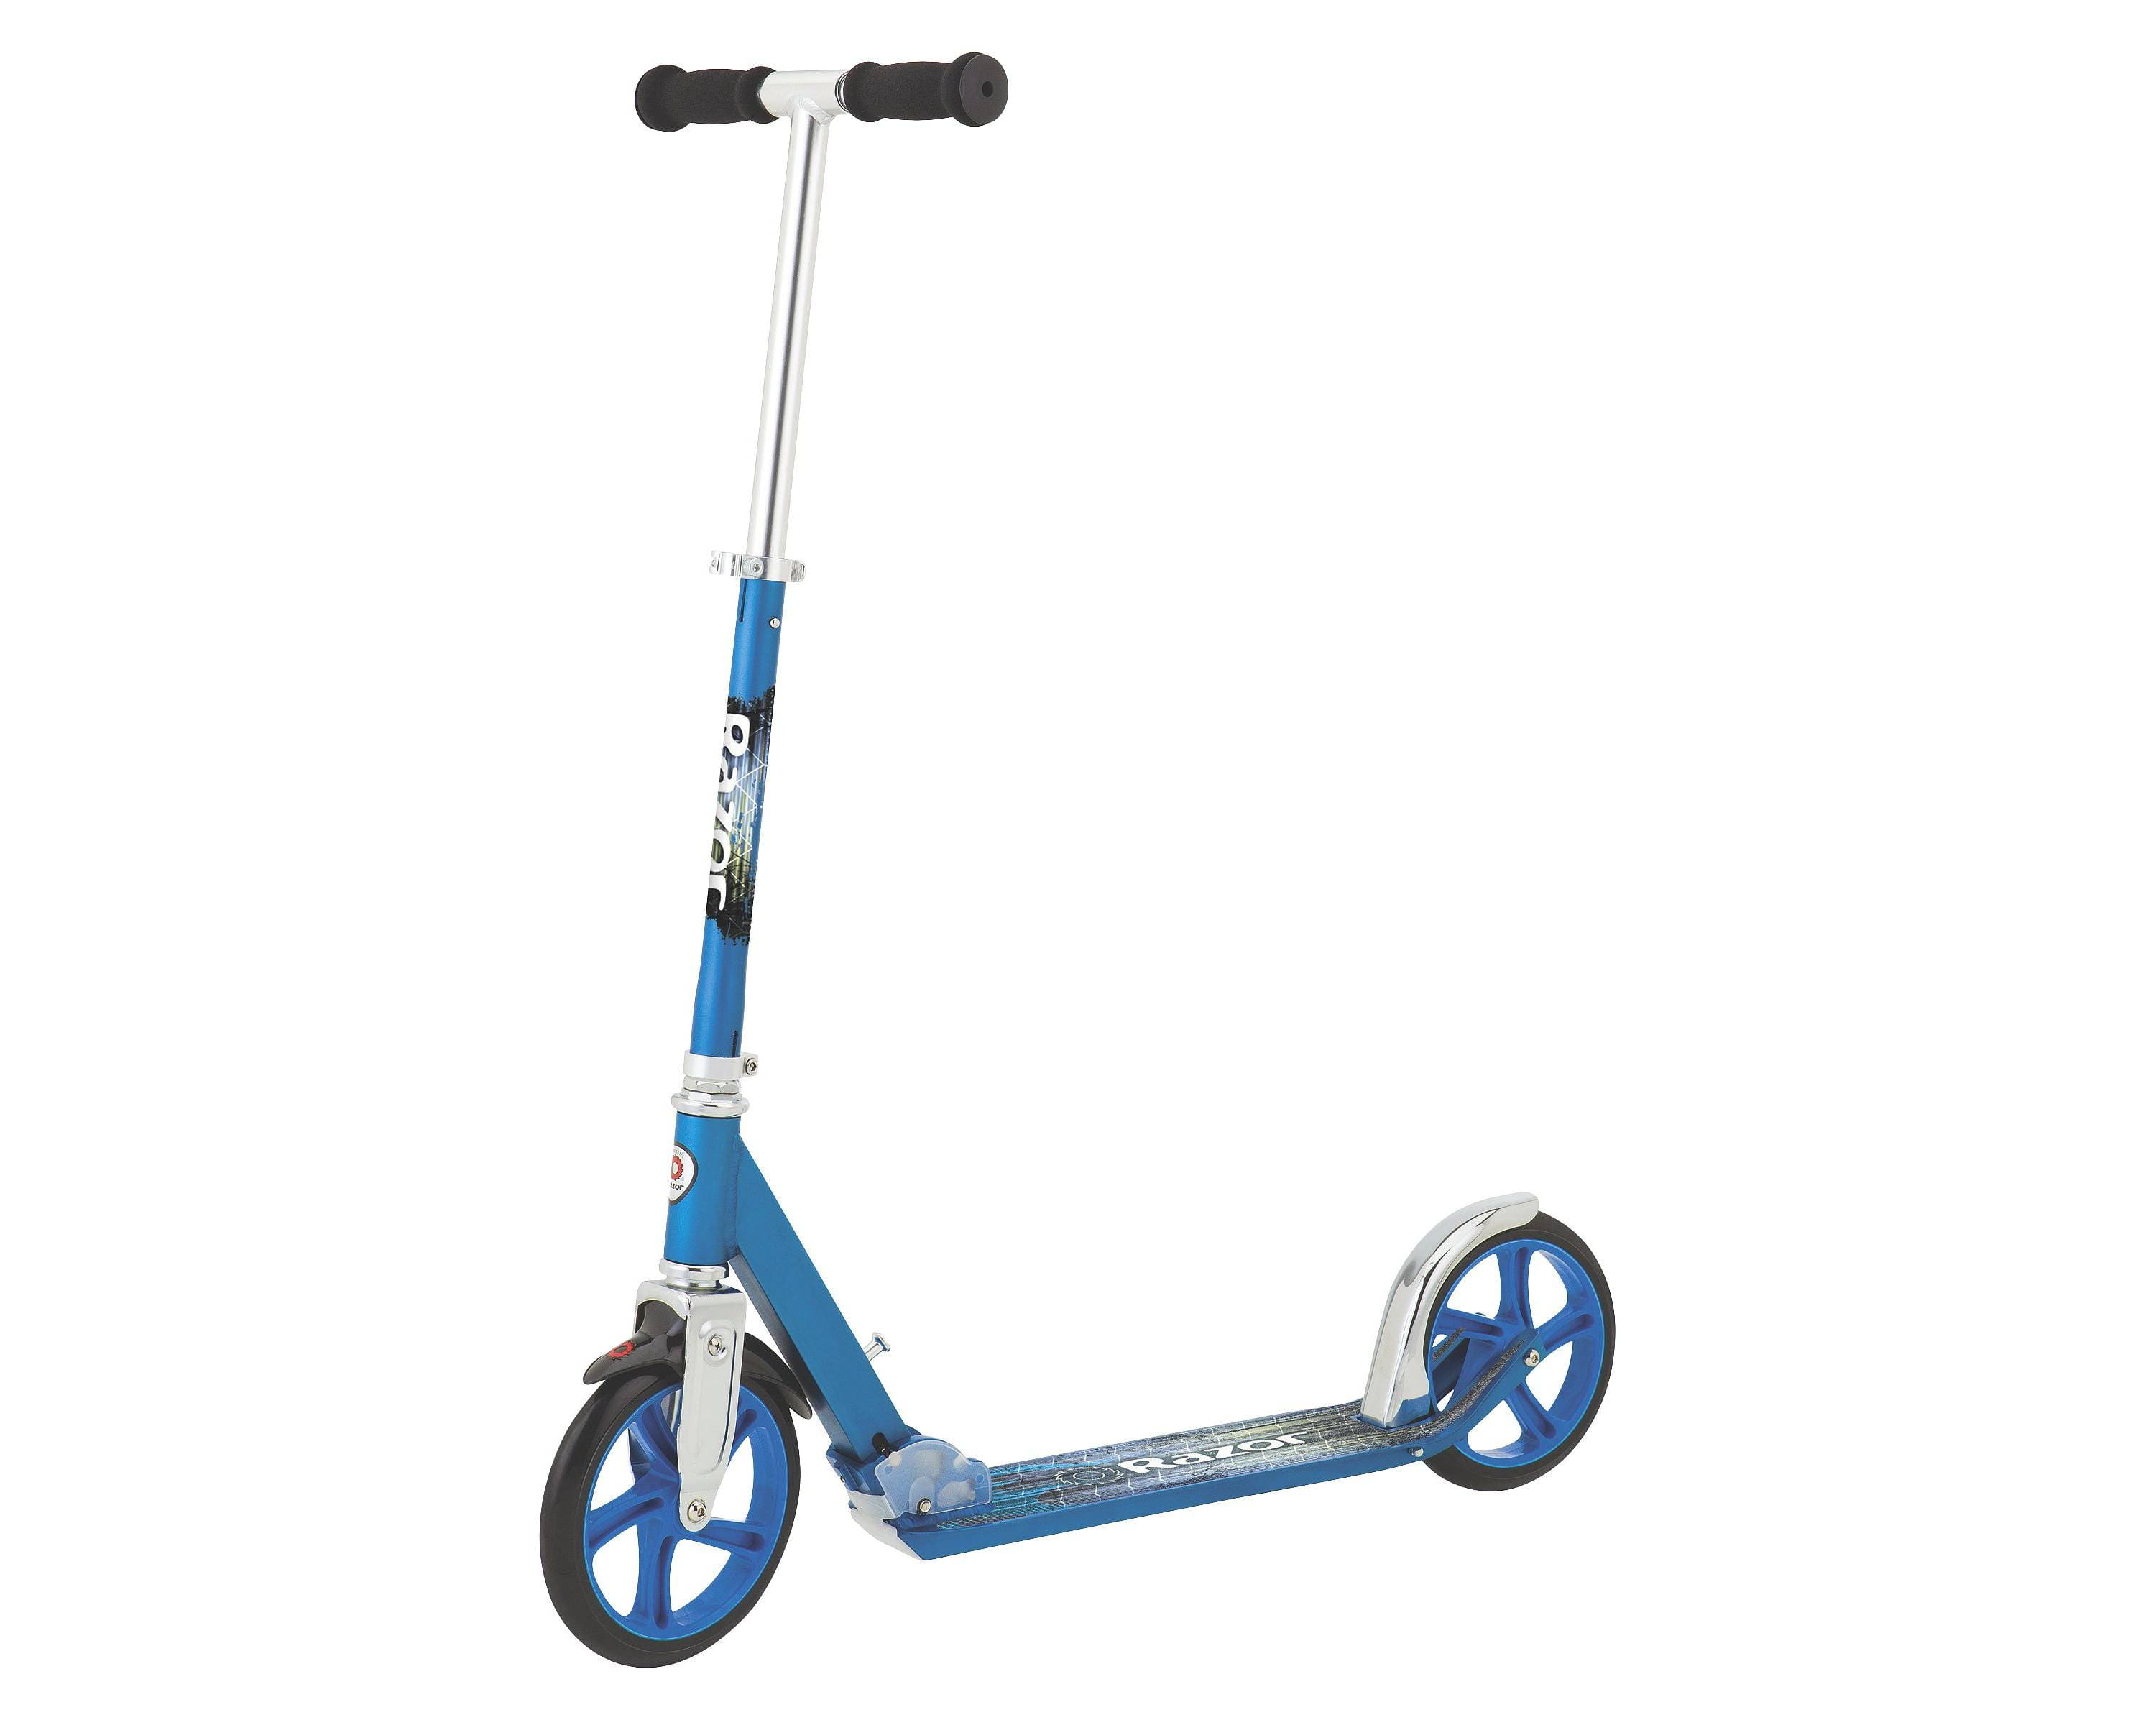 Razor A5 Lux Scooter [blue] $40.79